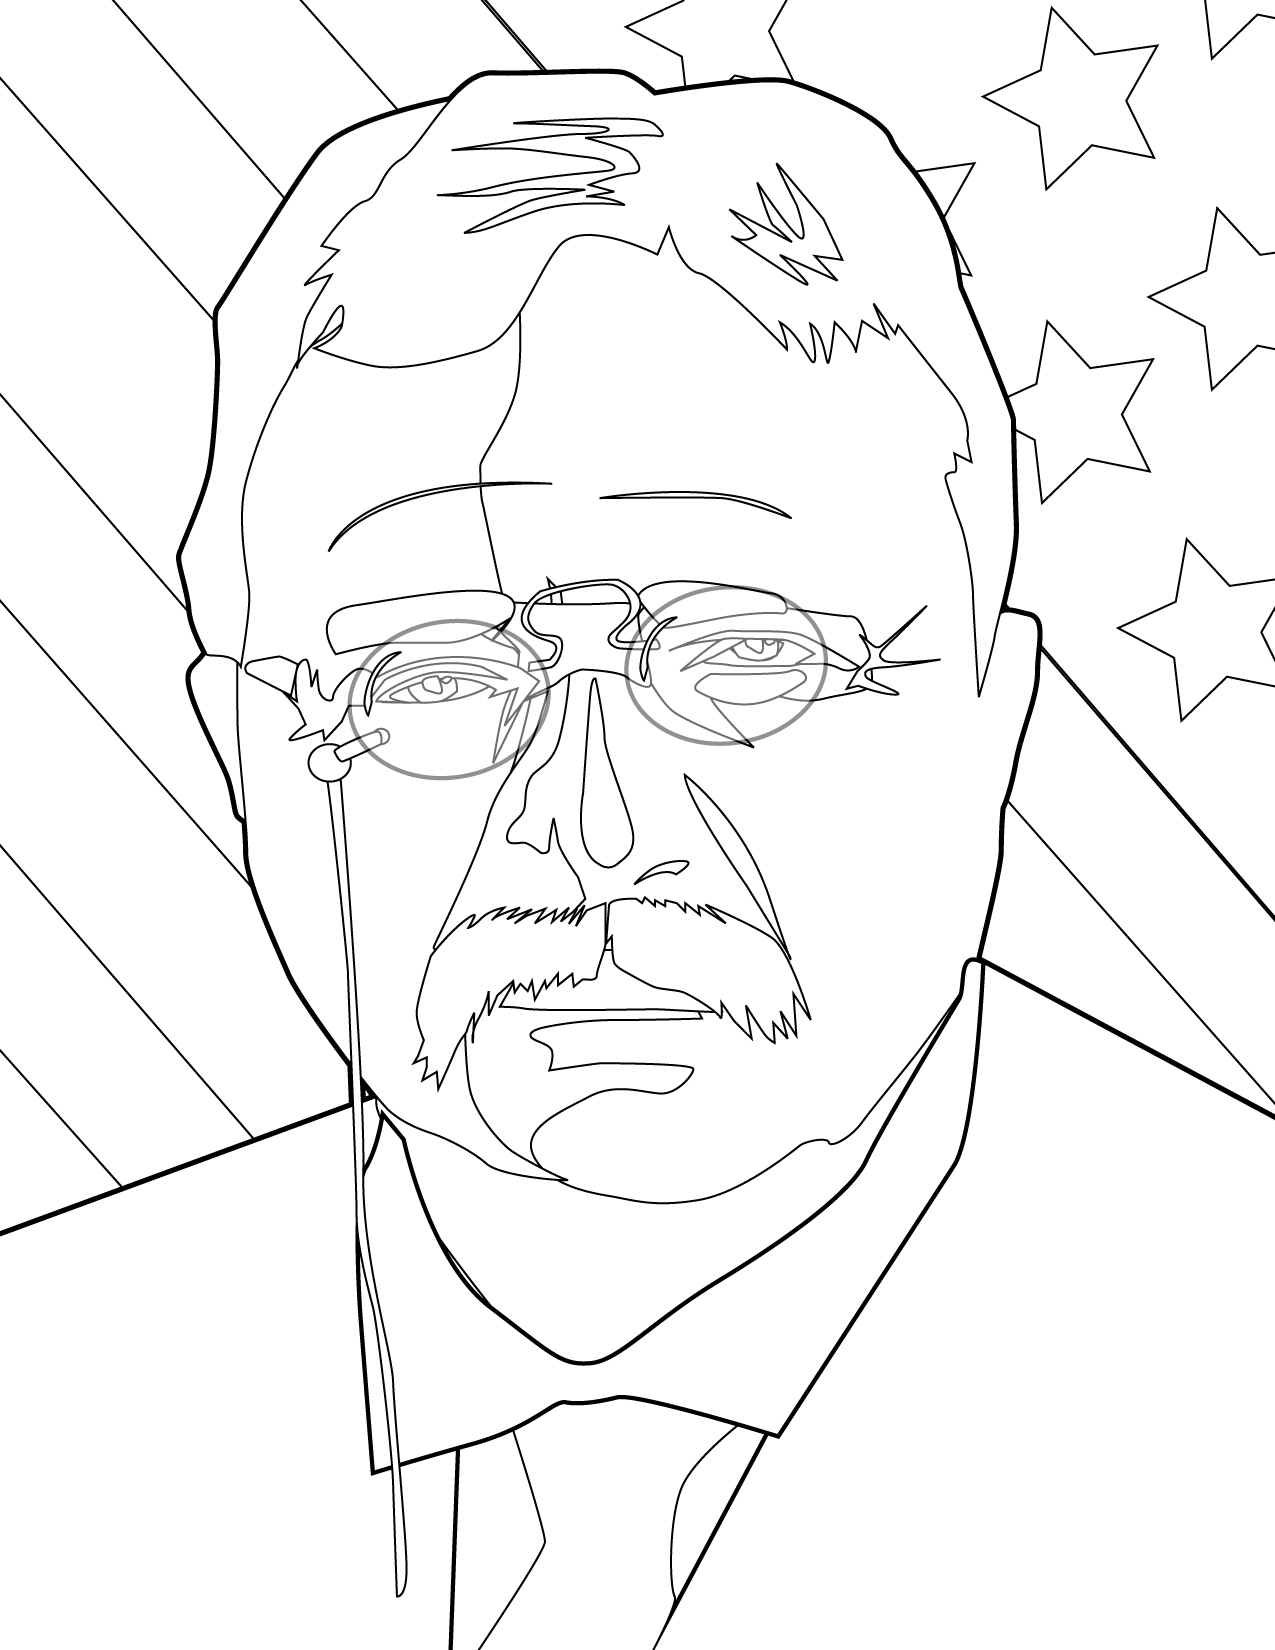 Coloring Pages Us Presidents Coloring Pages us presidents coloring pages handipoints theodore roosevelt